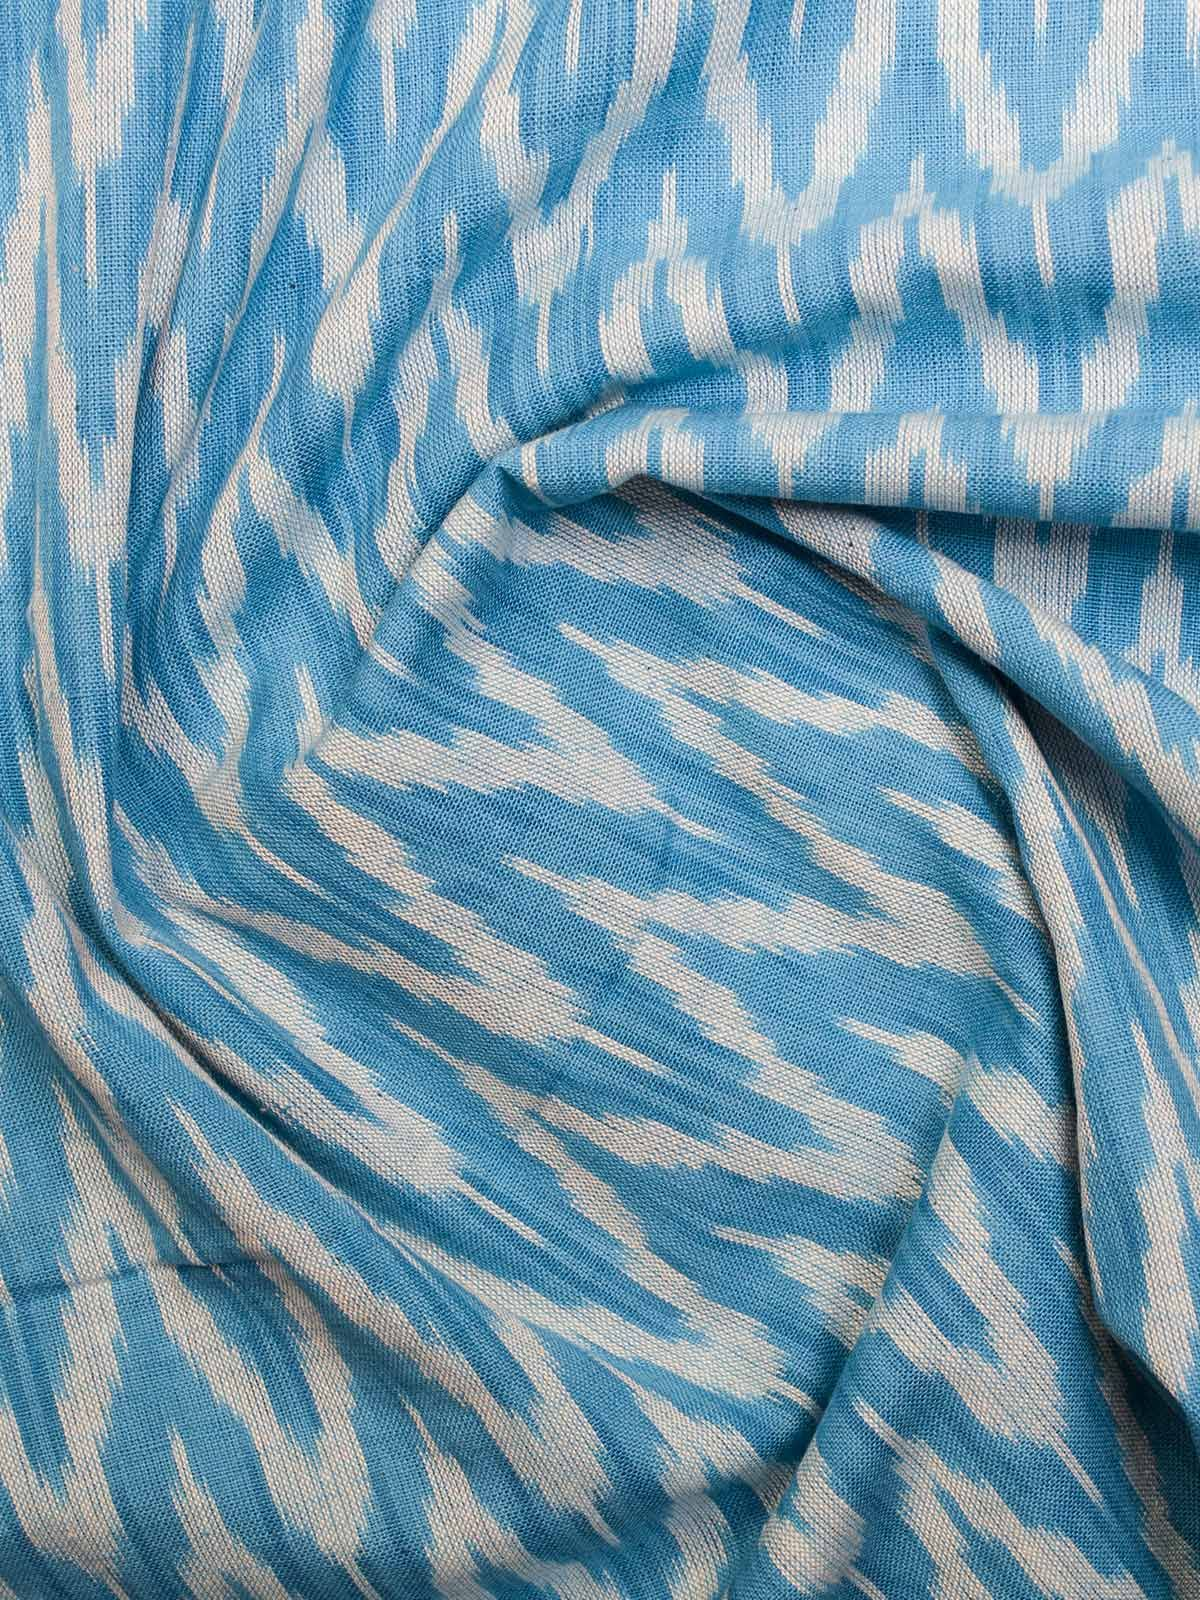 White and Blue Ikat Cotton Fabric